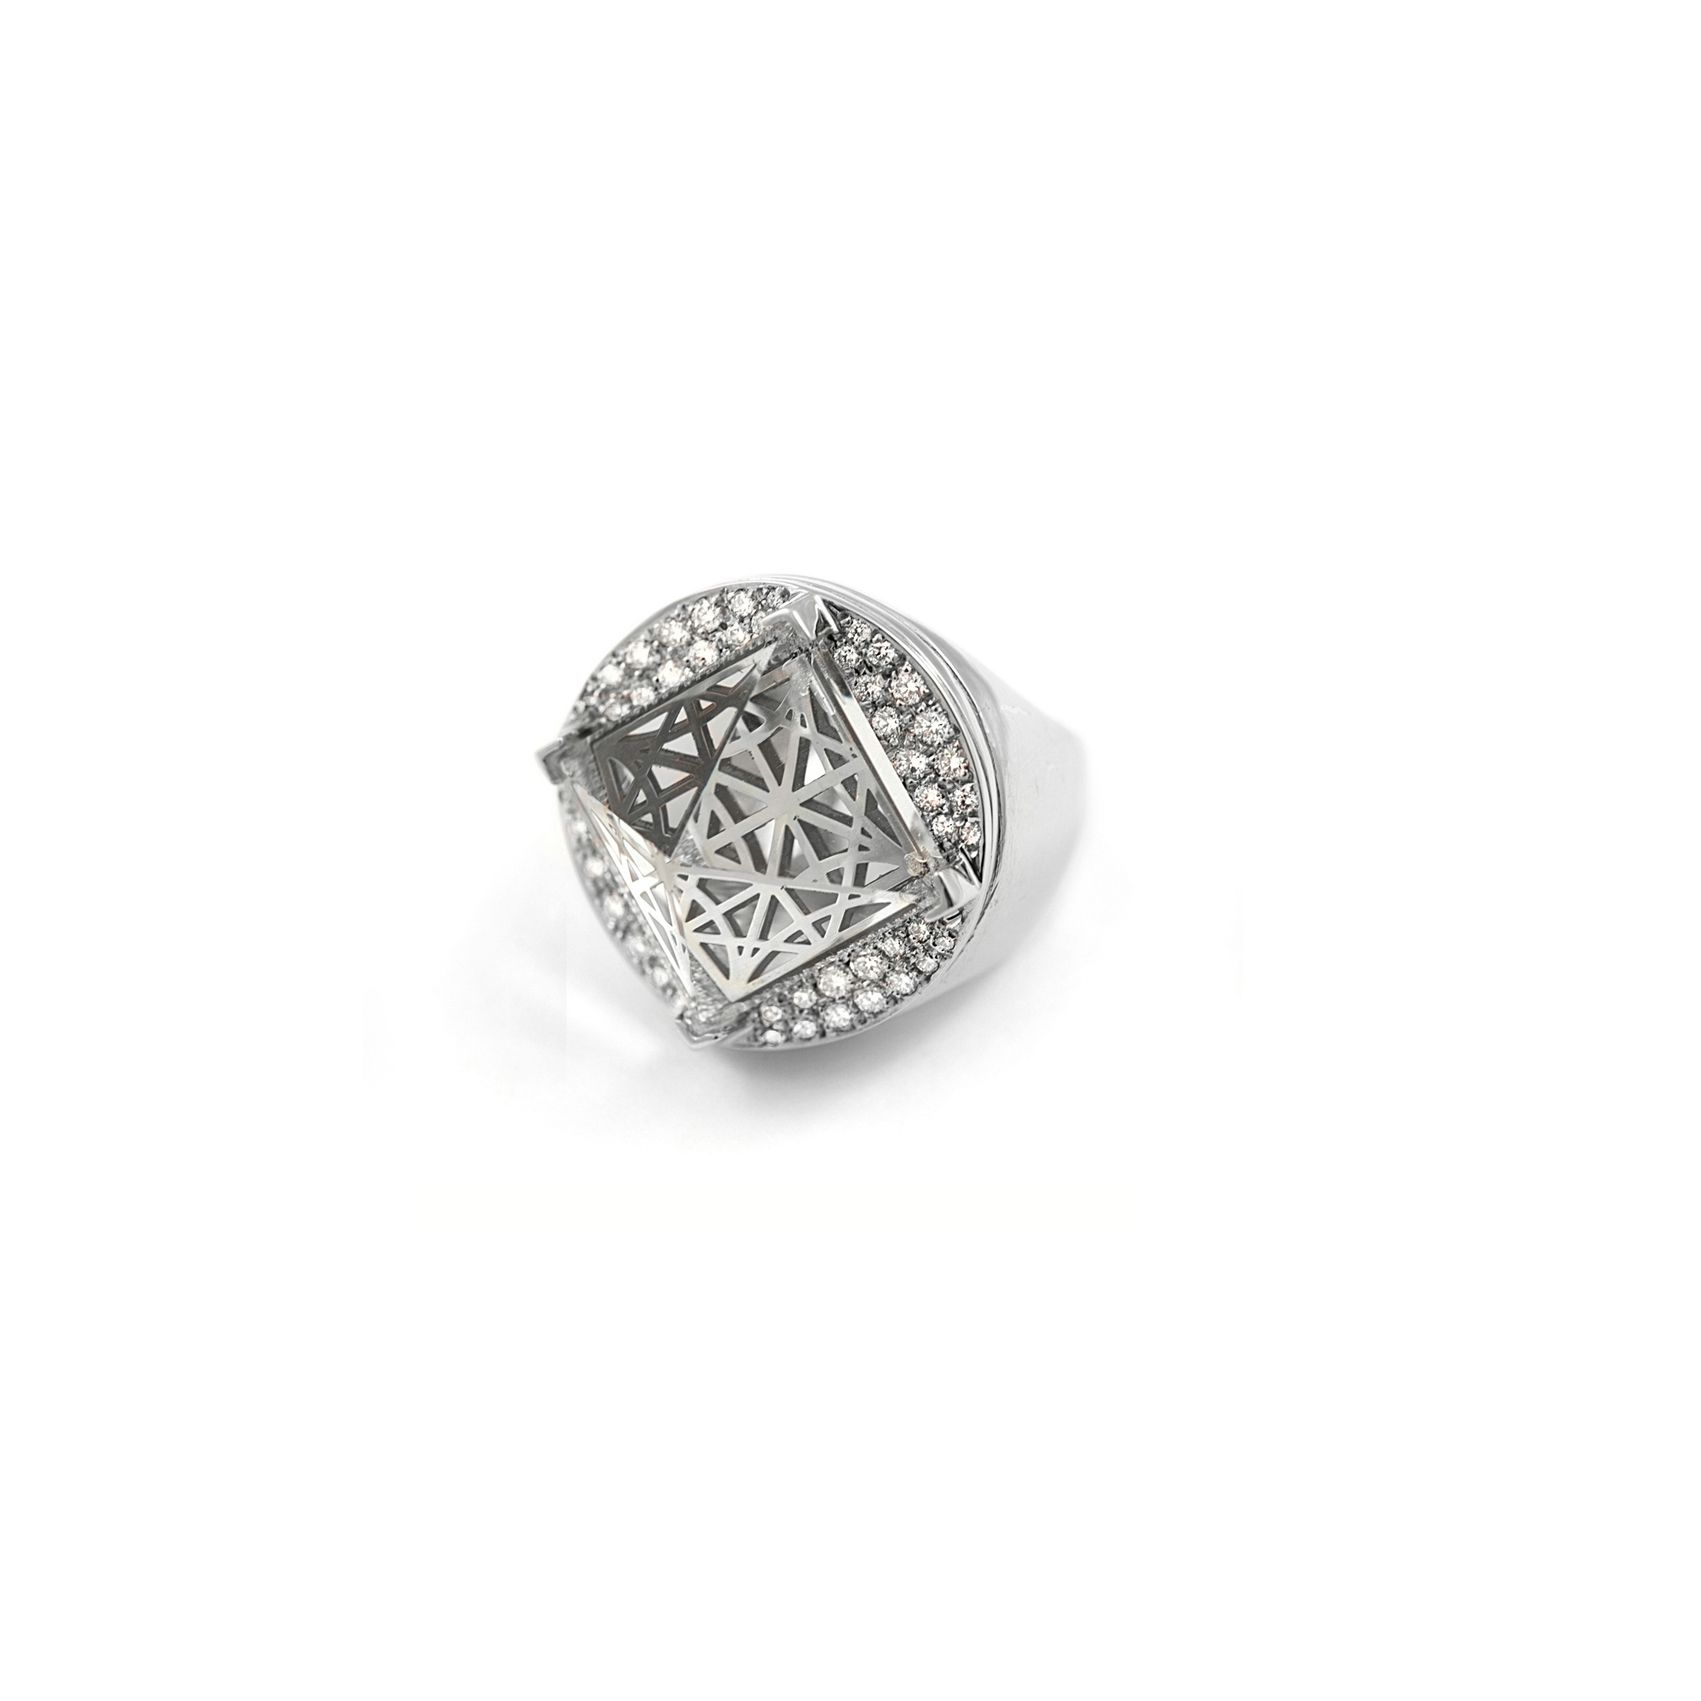 'Entropia' ring in gold and diamonds White gold and diamonds ring